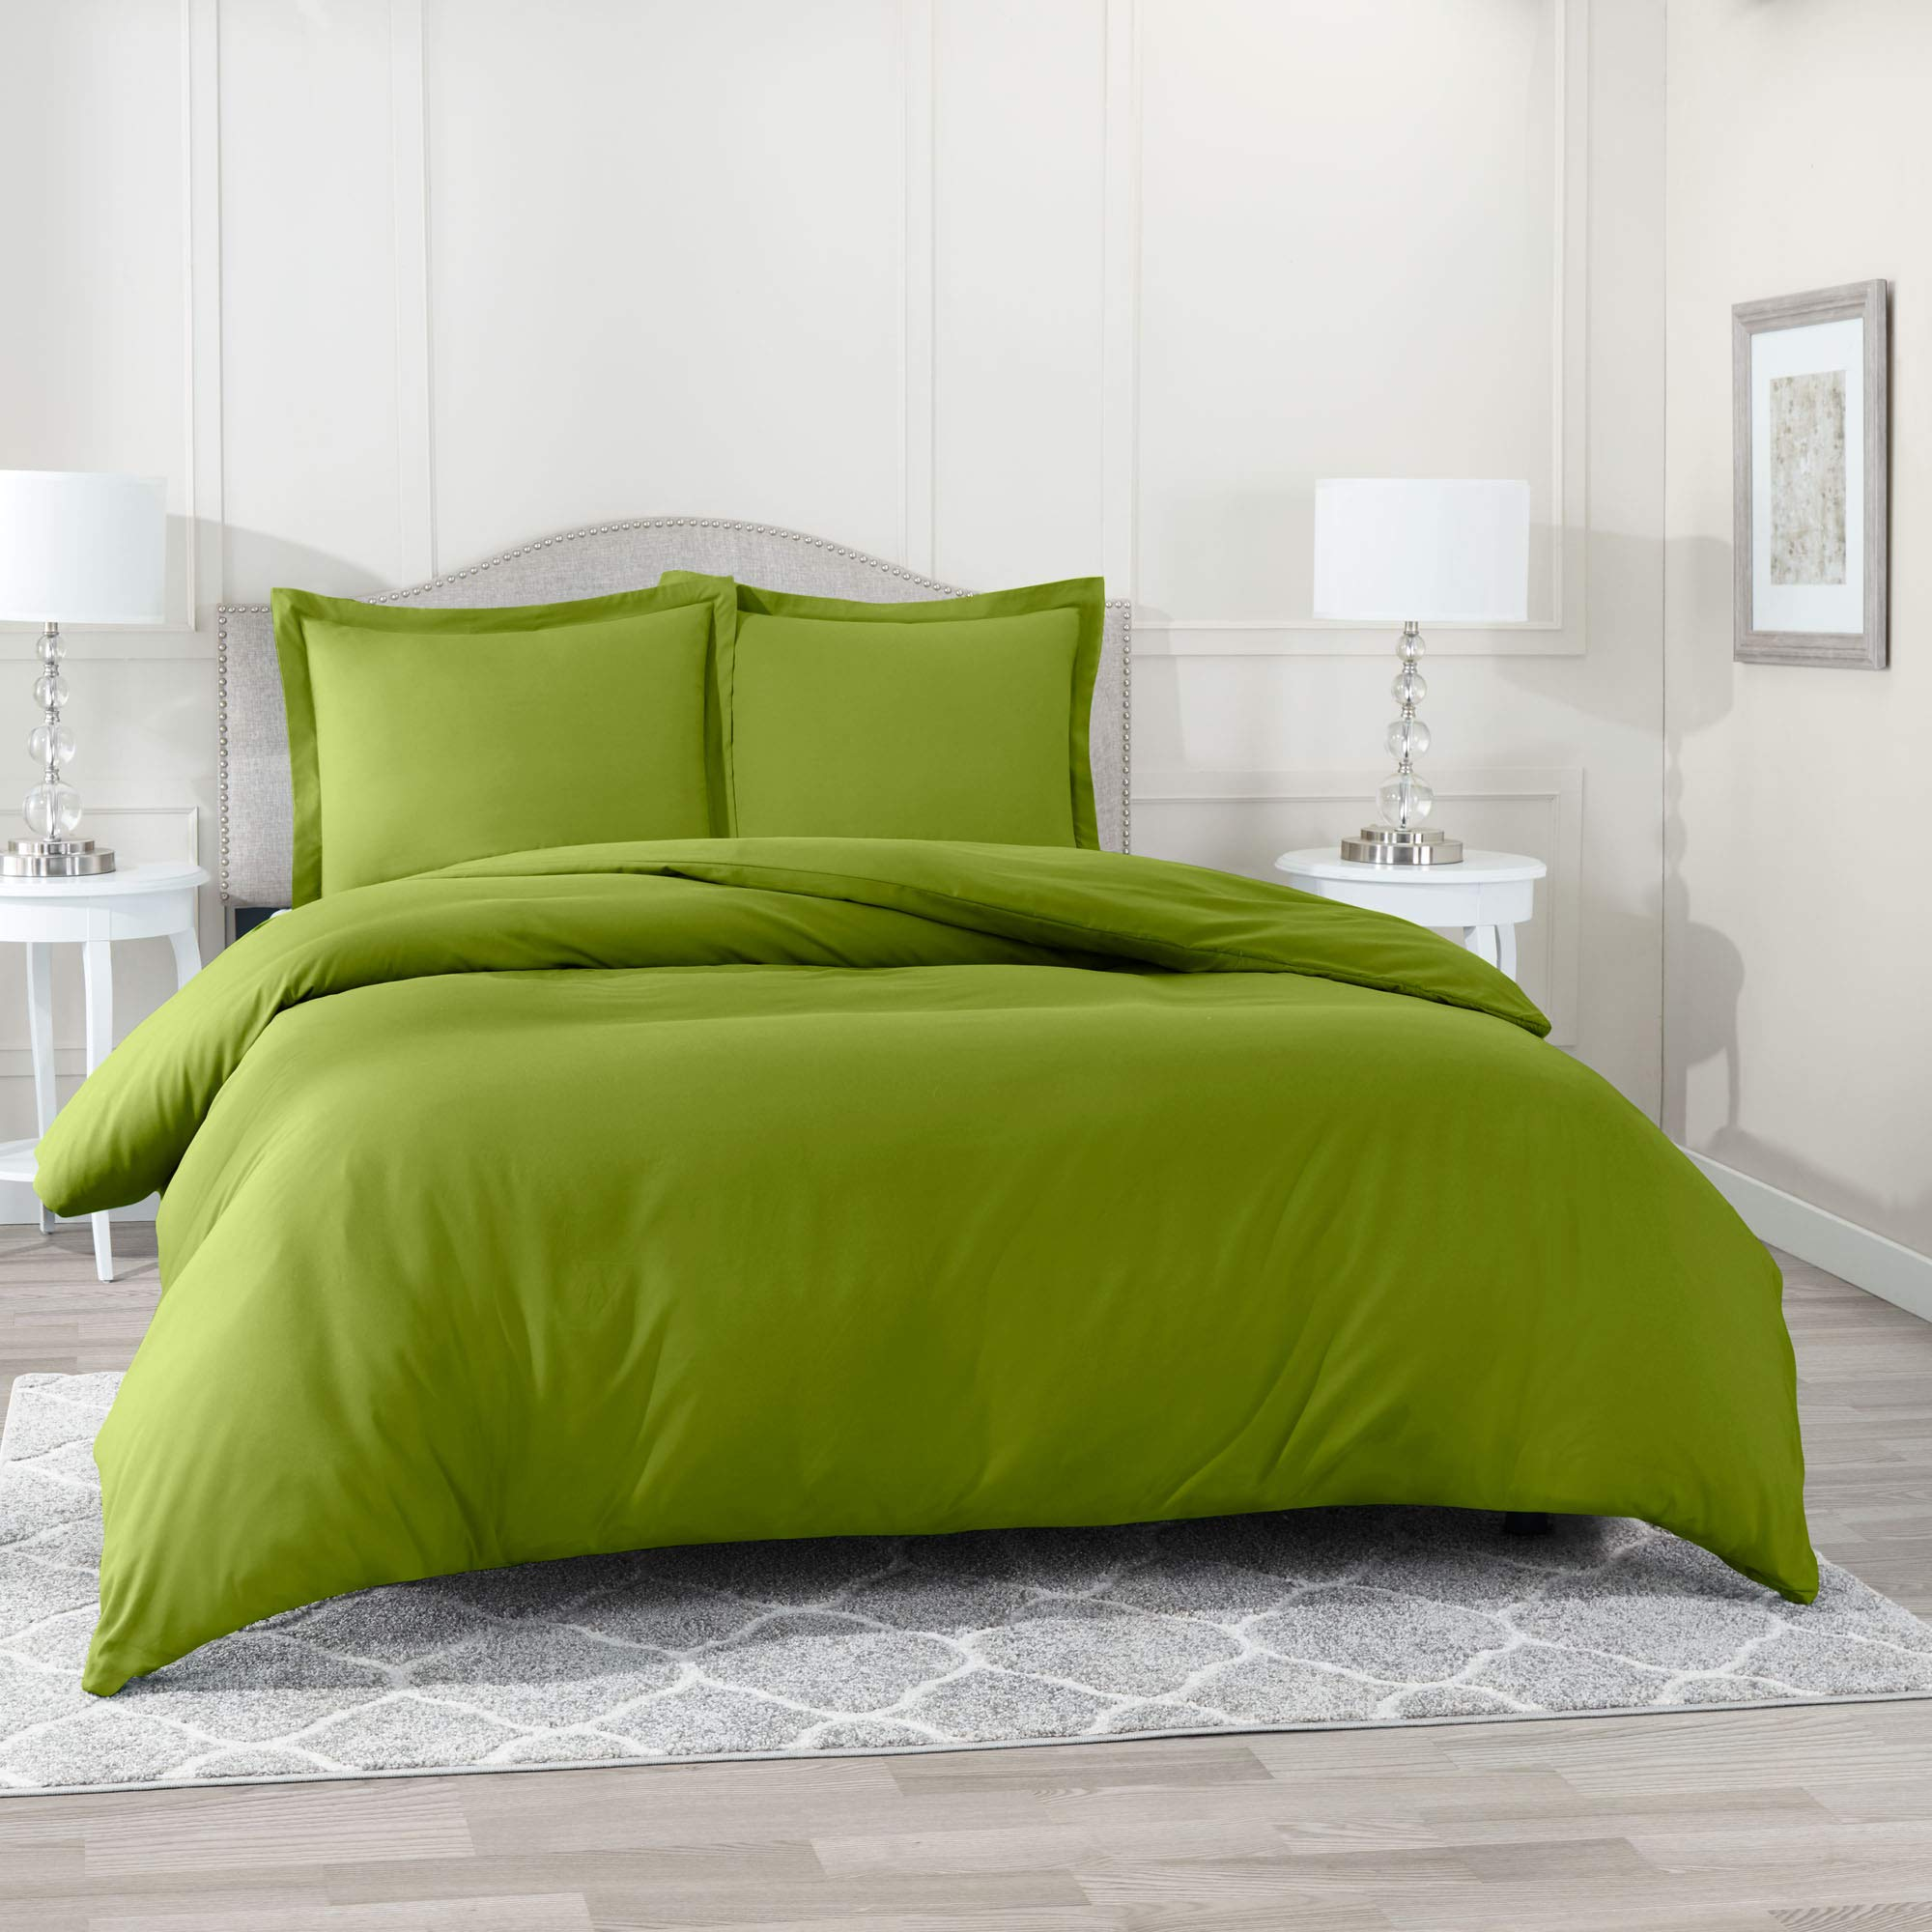 Nestl Bedding Duvet Cover with Fitted Sheet 4 Piece Set - Soft Double Brushed Microfiber Hotel Collection - Comforter Cover with Button Closure, Fitted Sheet, 2 Pillow Shams, King - Calla Green